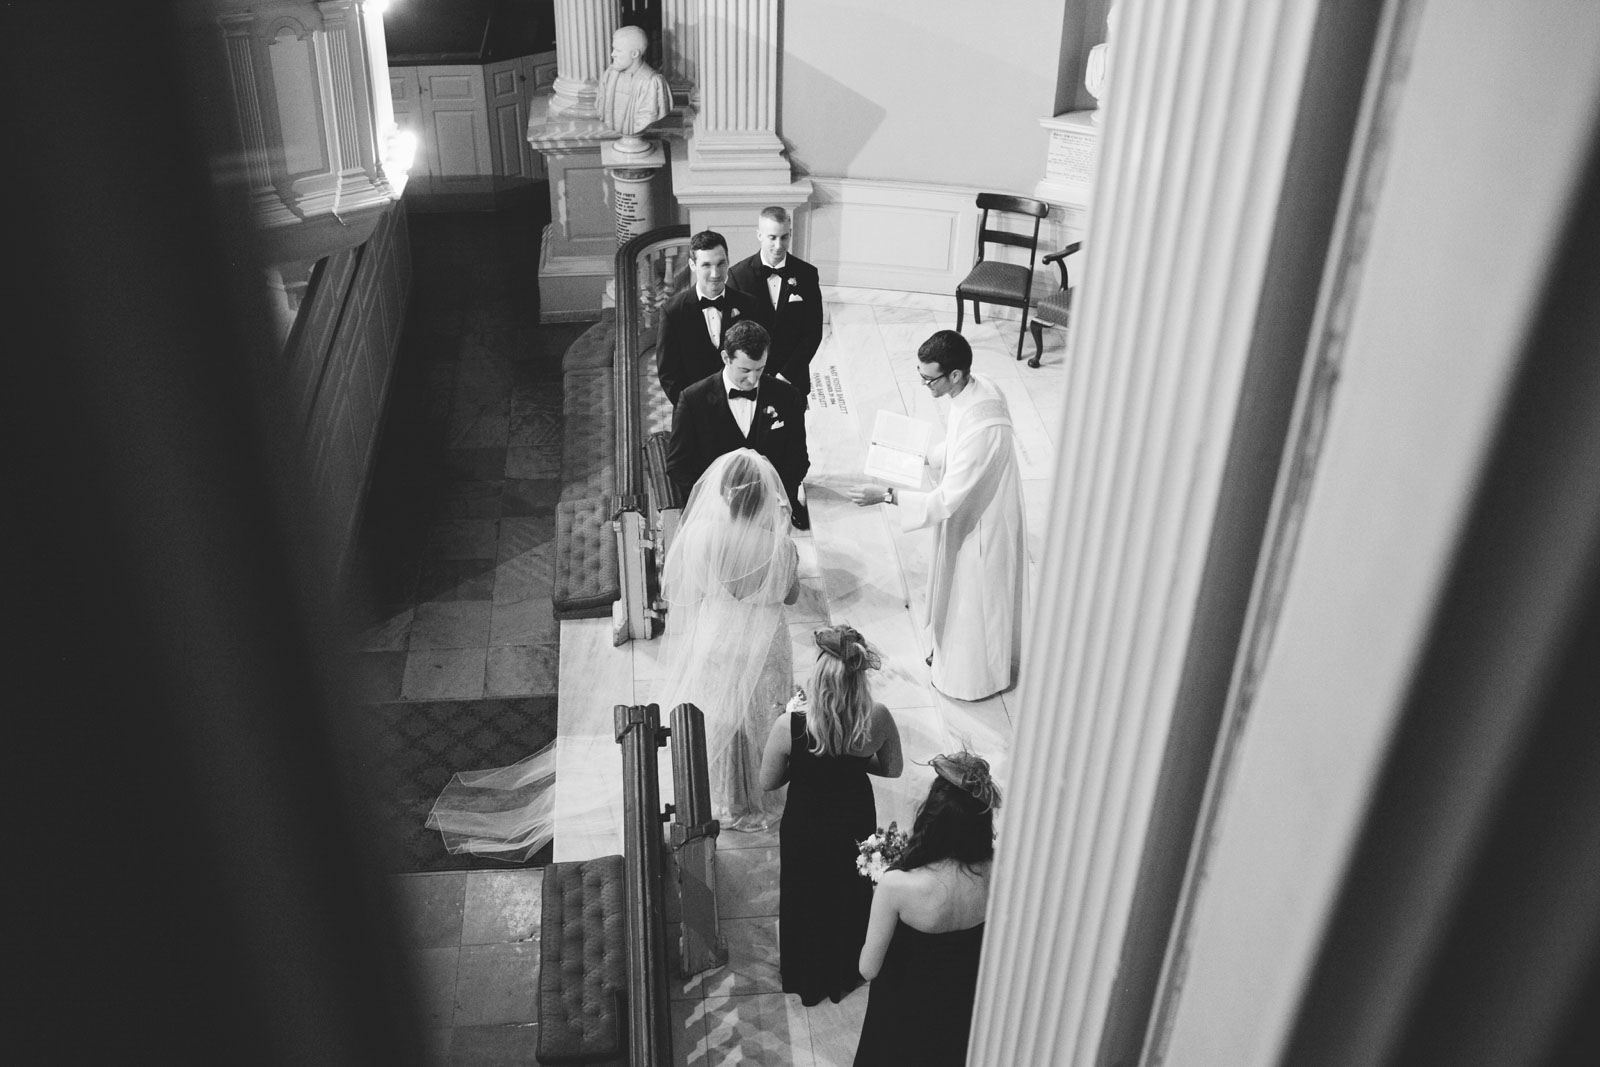 Black and white shot from above of 20s-inspired wedding ceremony in Boston with art-deco details